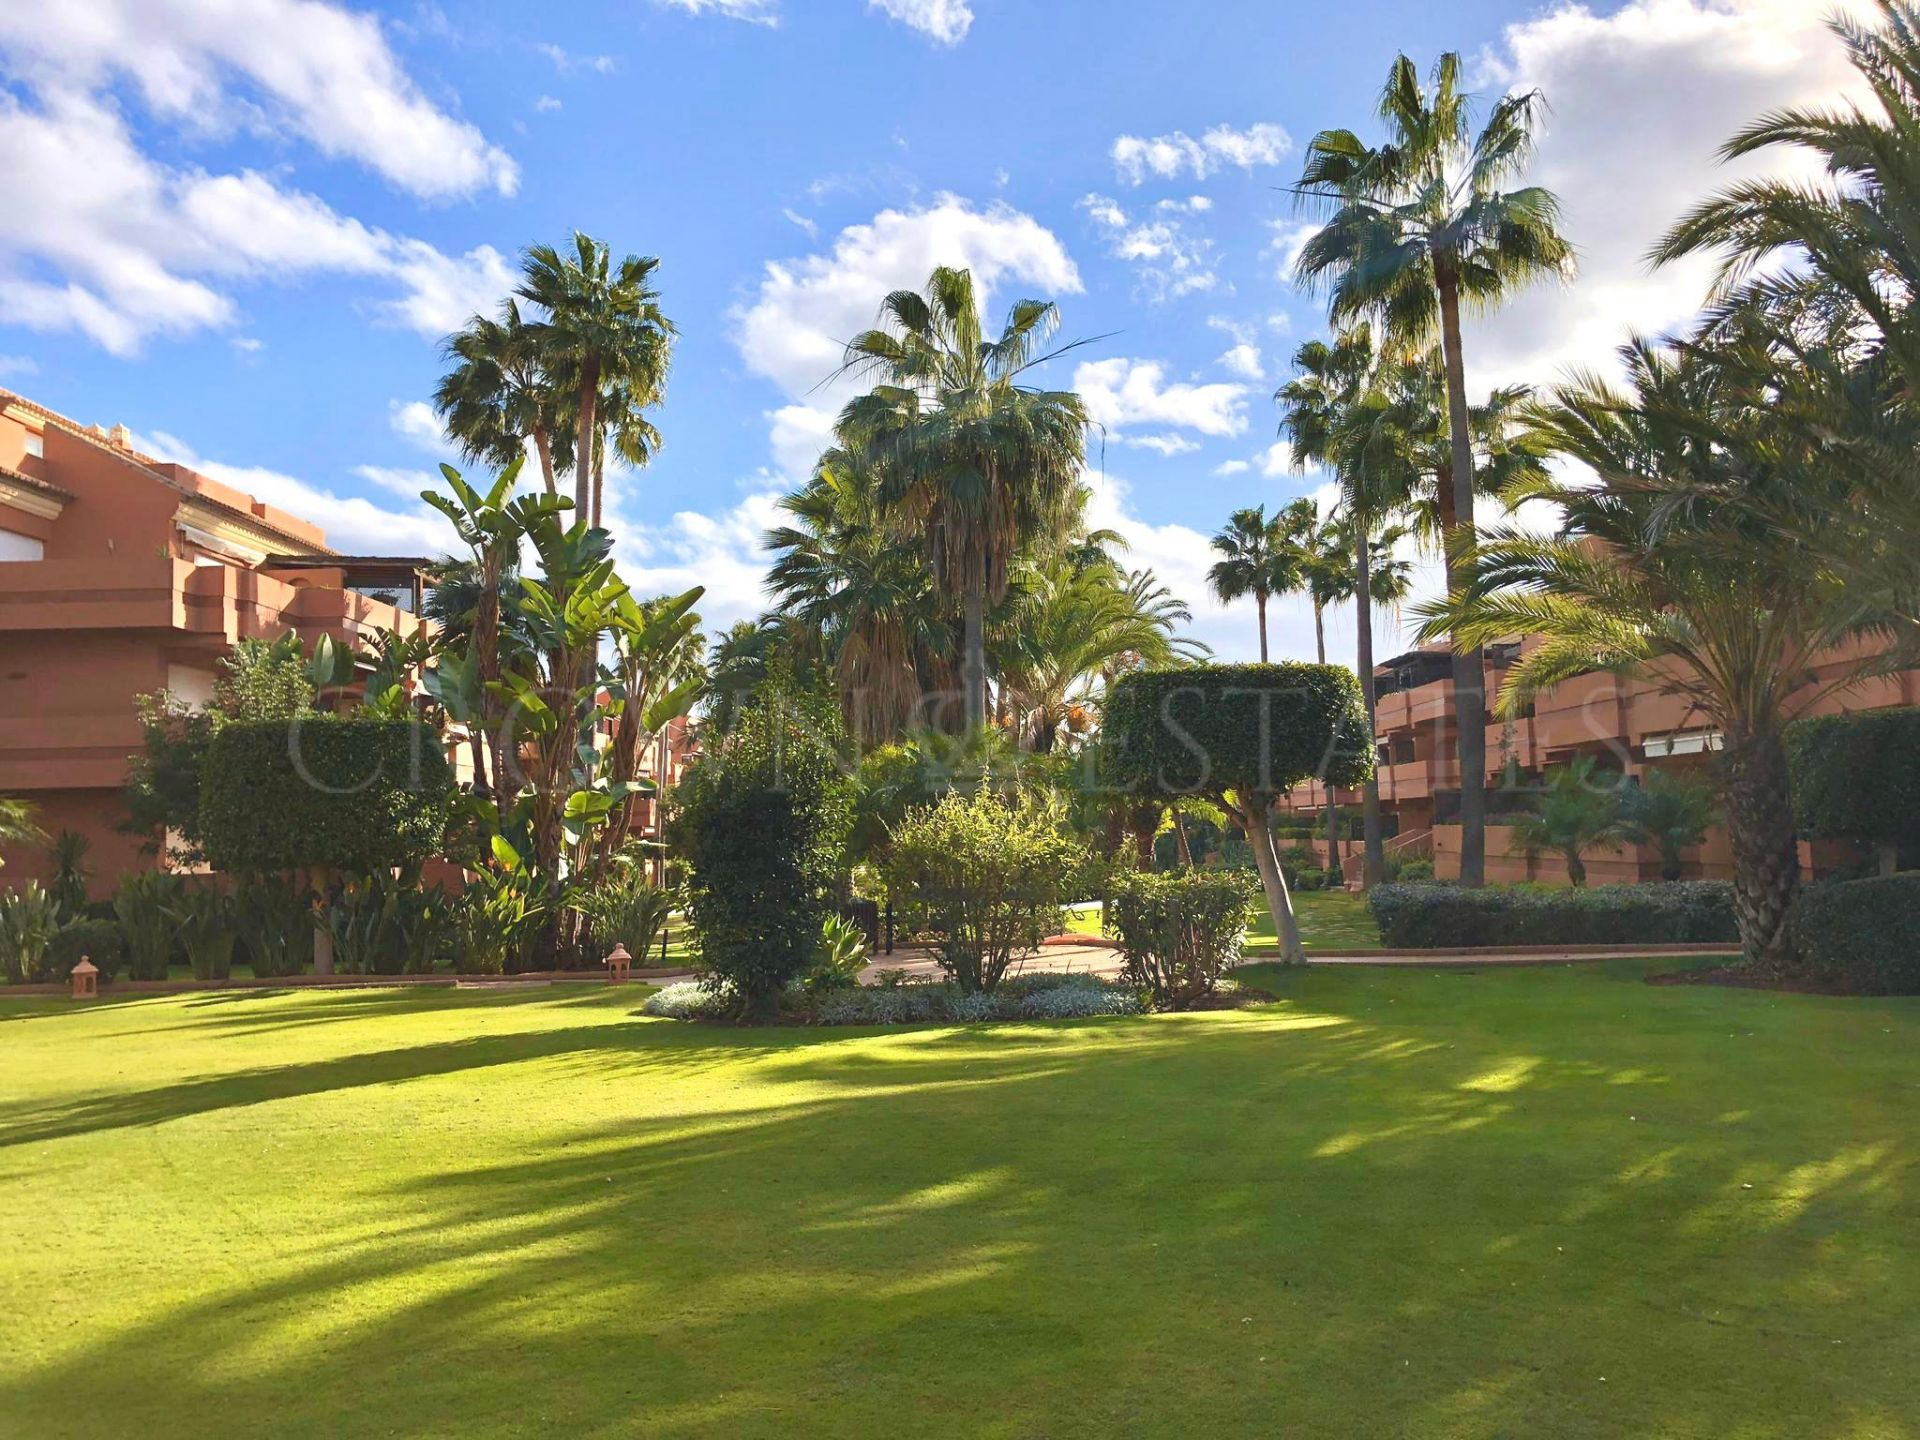 2 Bedroom and 2 Bathroom Apartment with Garage in Embrujo Playa